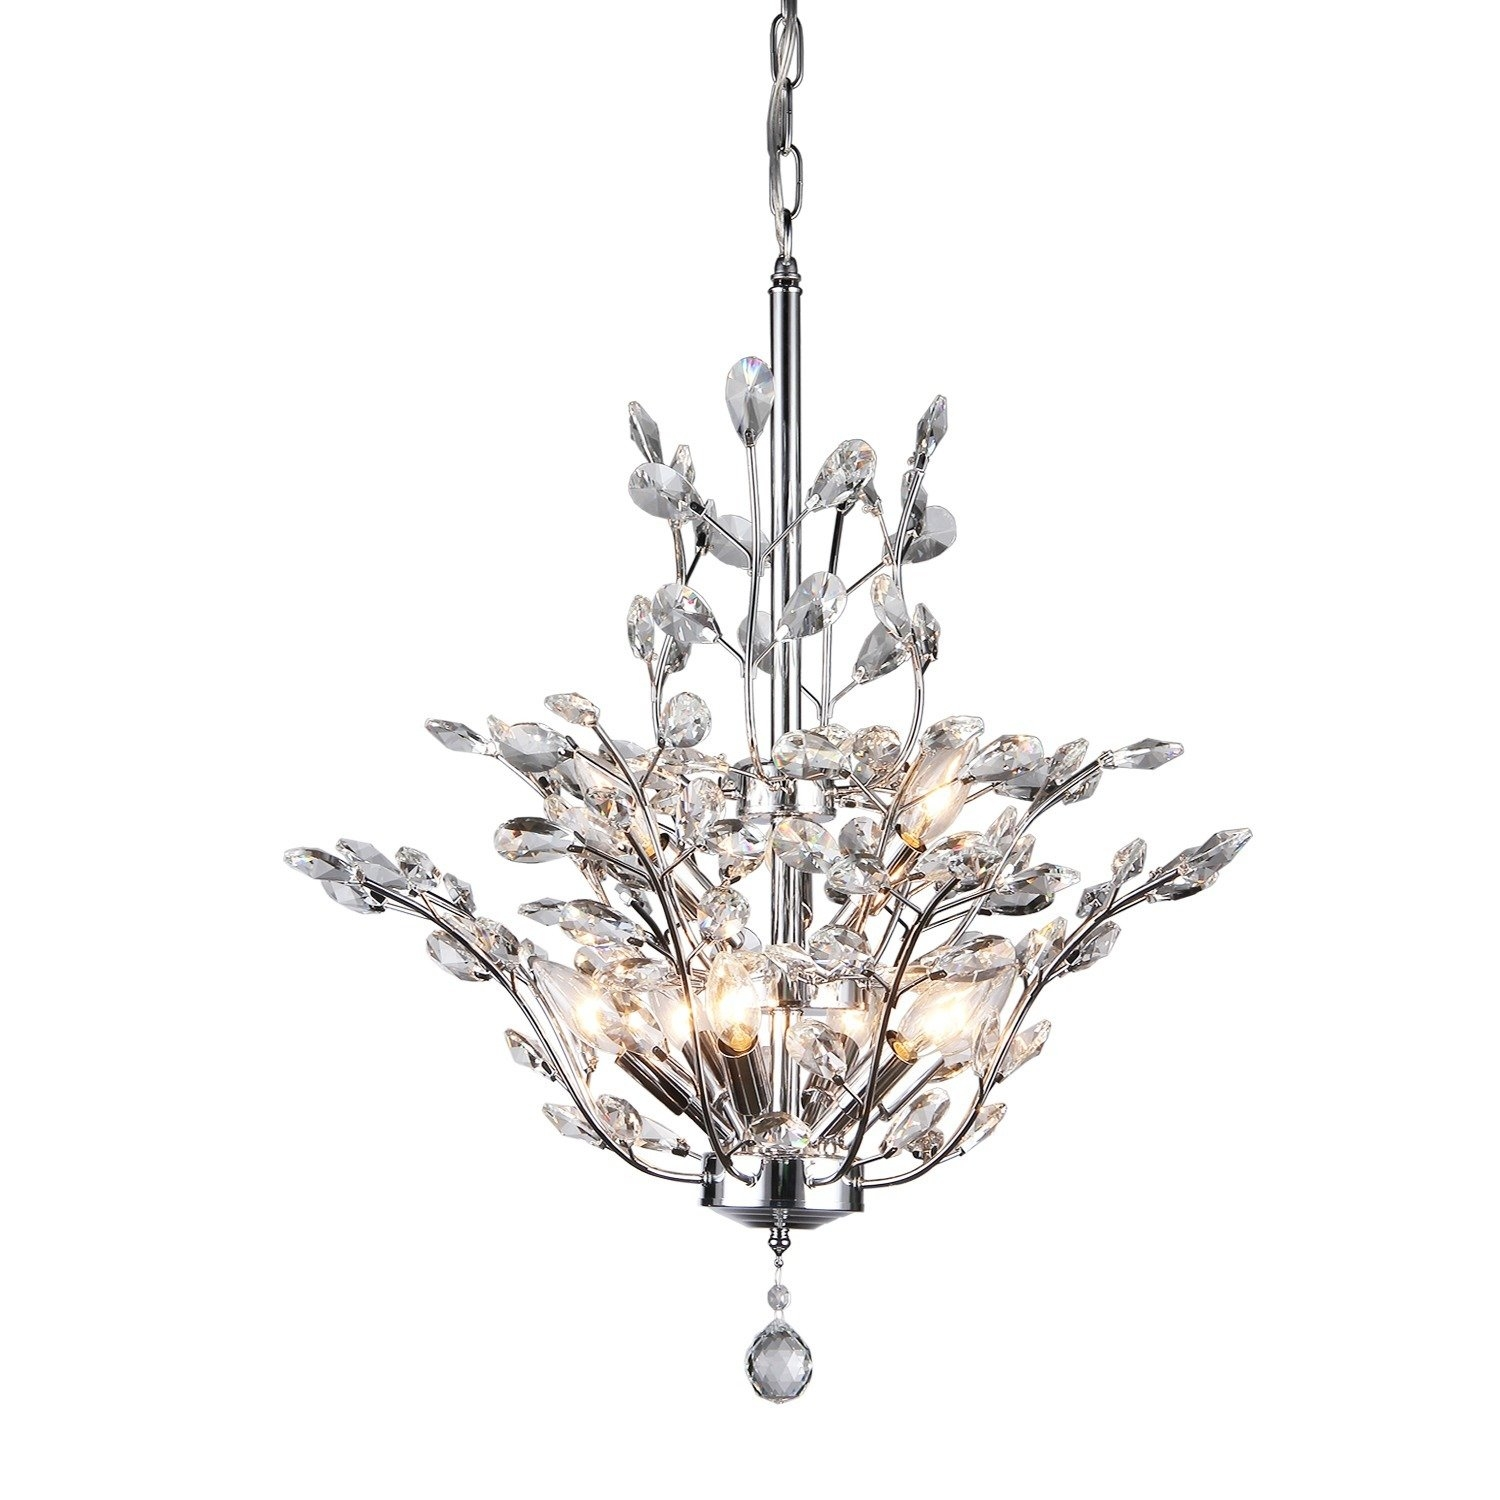 Dudley 9 Light Crystal Chandelier Reviews Joss Main With Regard To Branch Crystal Chandelier (#6 of 12)